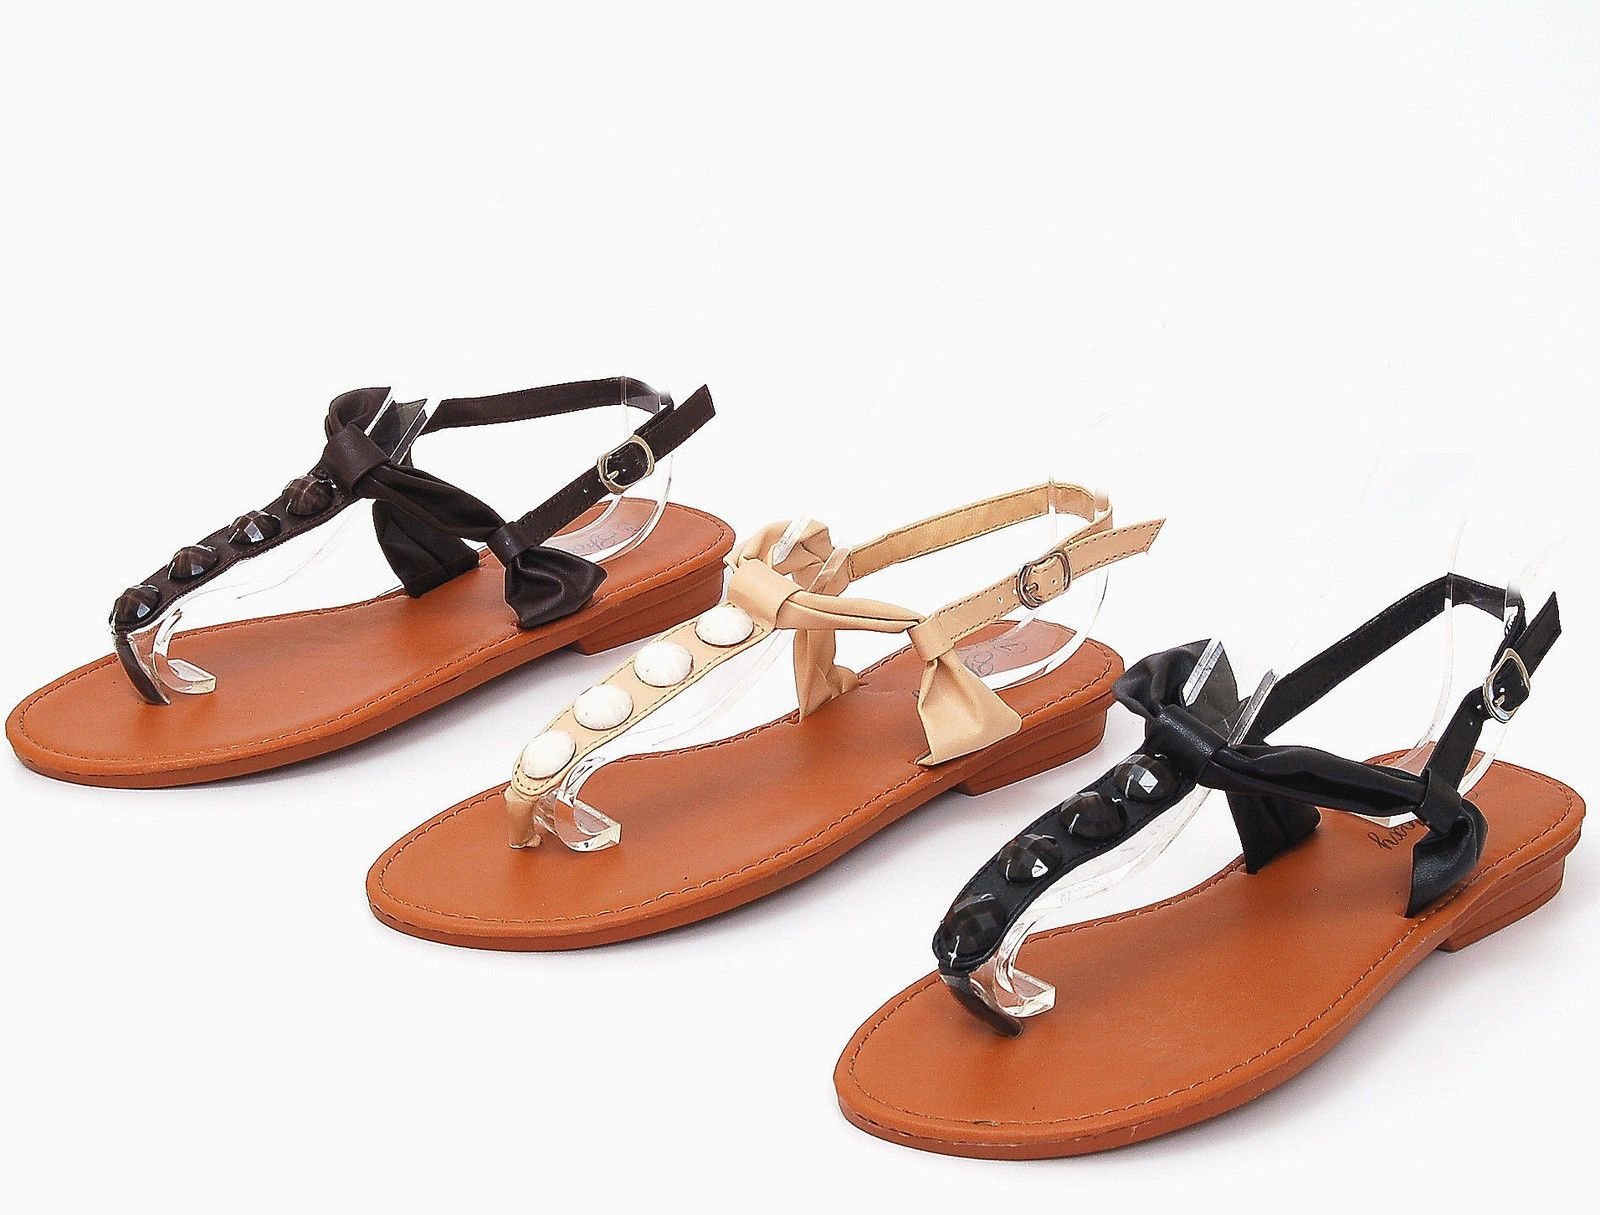 b4b5a8e98e2 Womens Gladiator Sandals Roman Thongs Summer Flats Shoe Ankle Straps in 3  Colors